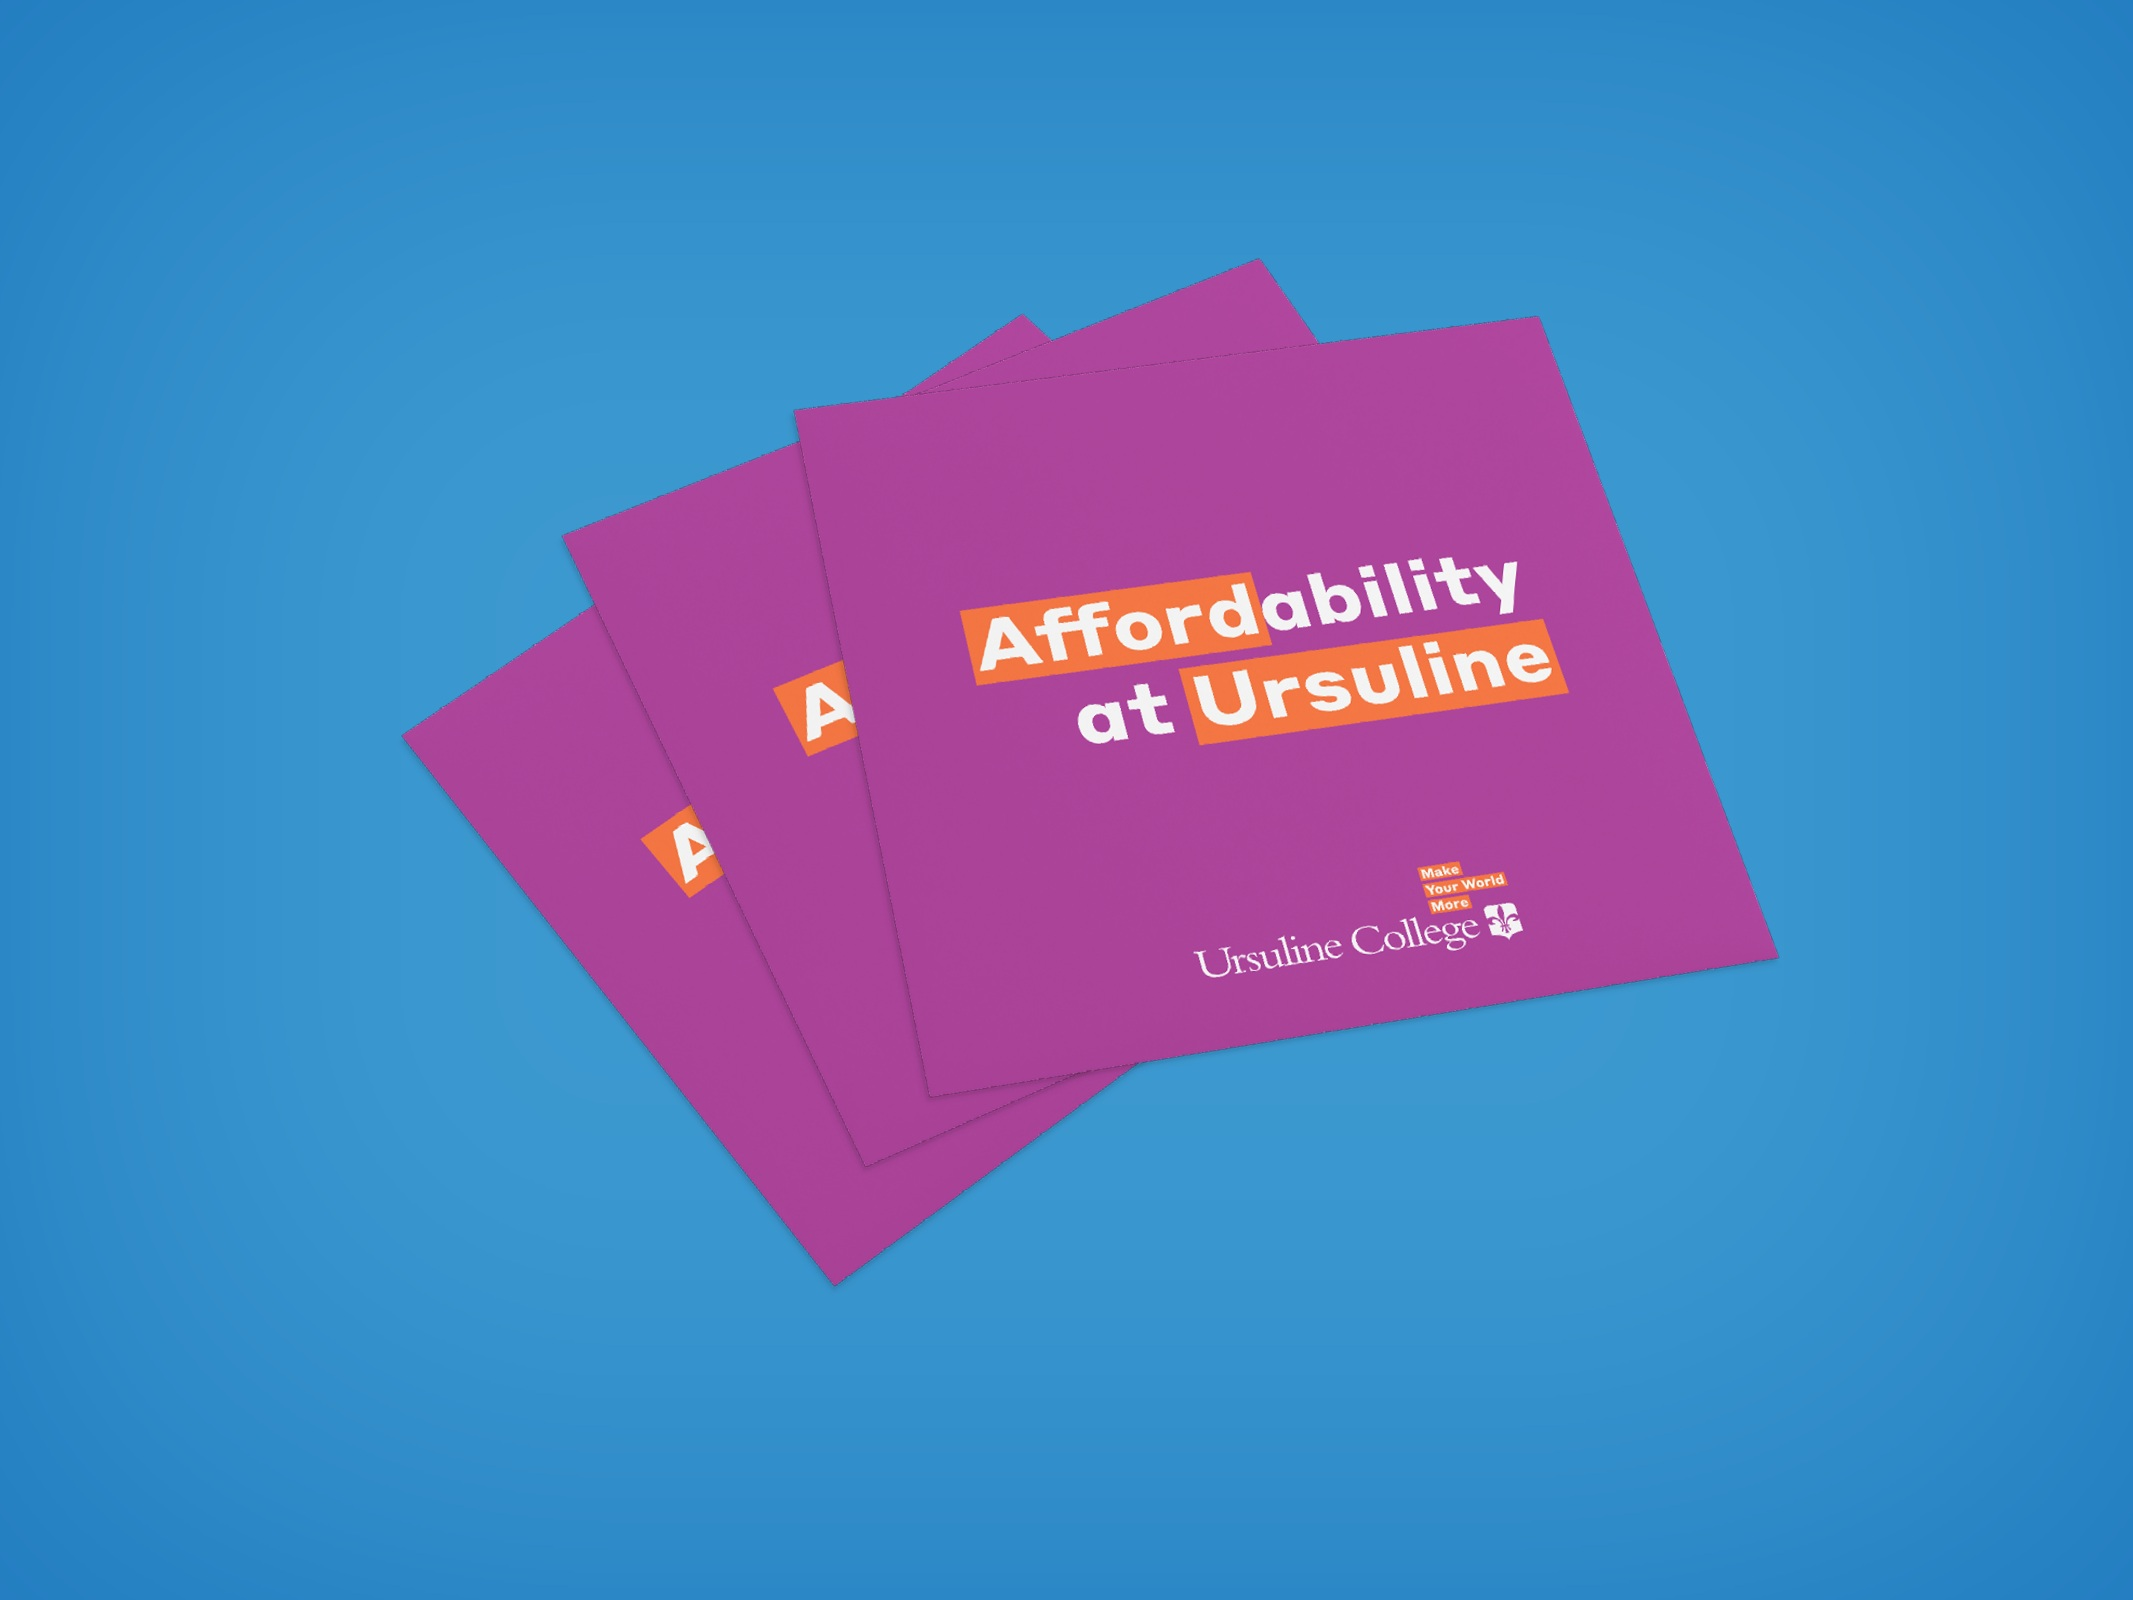 Affordability at Ursuline brochures